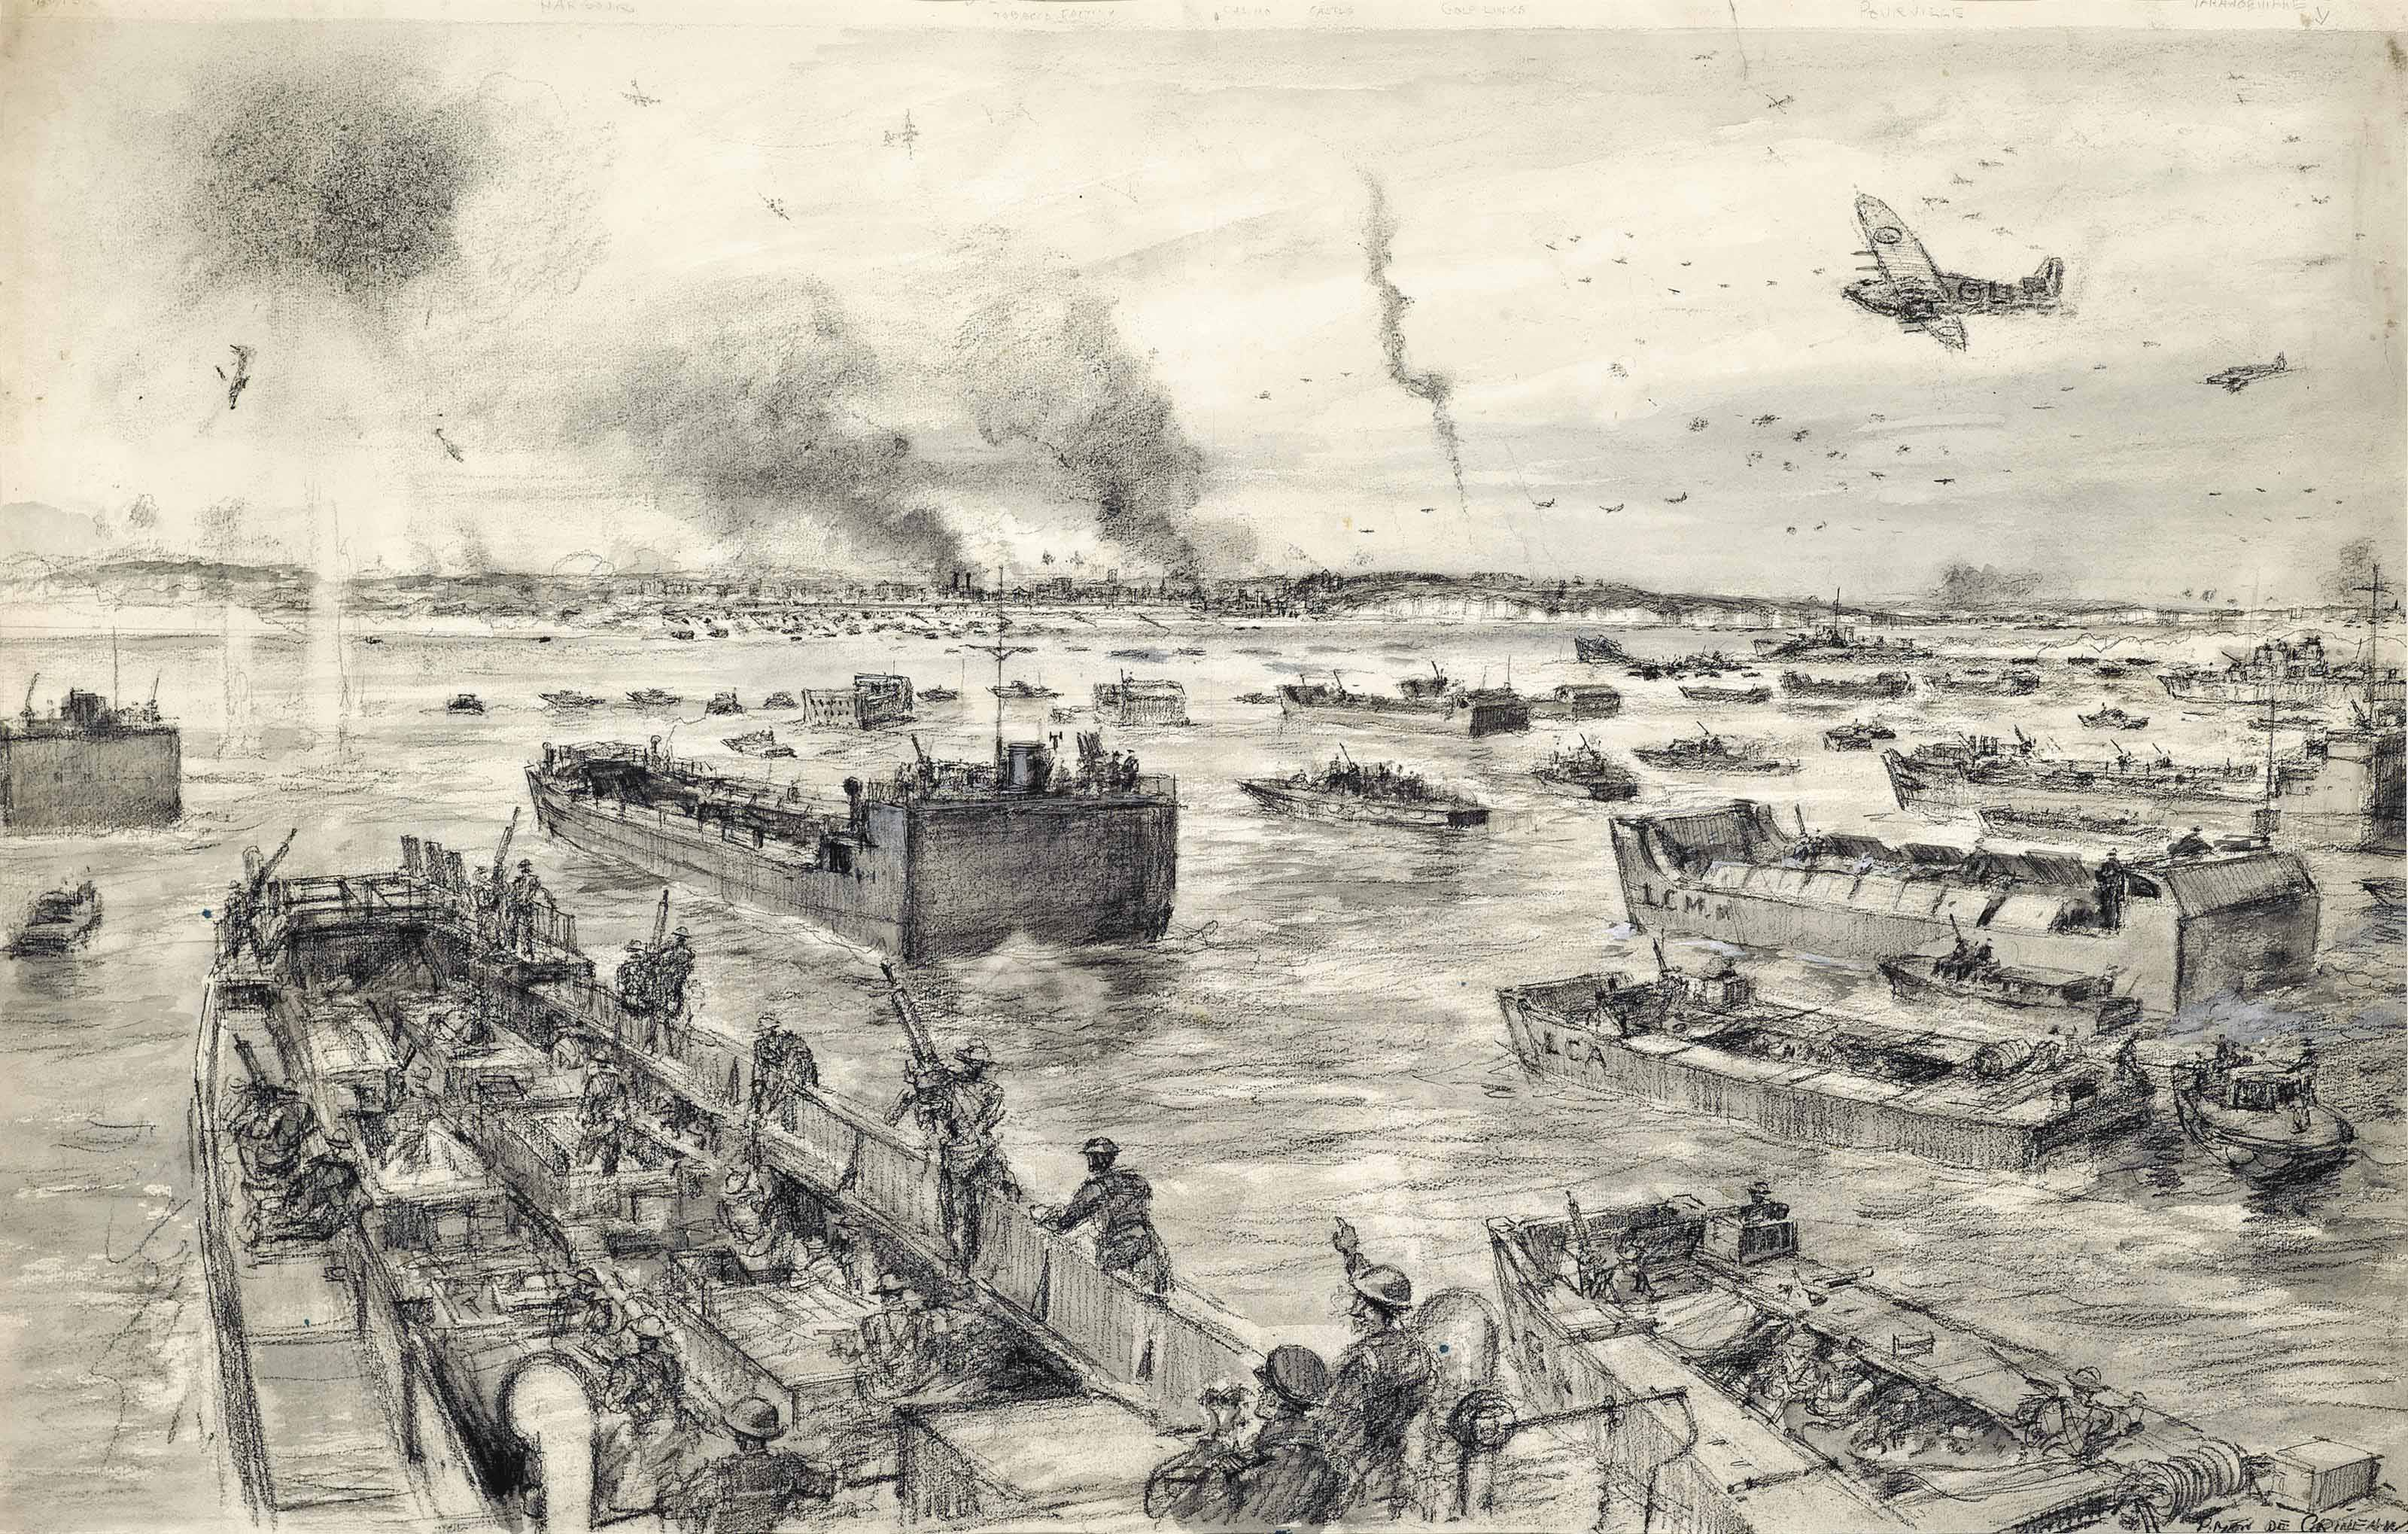 Zero hour off Dieppe: The Combined Services launch their attack at the appointed time and place: With the opening stages of an air battle raging overhead the British Armada sails dauntlessly in, it's cargo of heroic commando troops ready to storm the defences of Dieppe